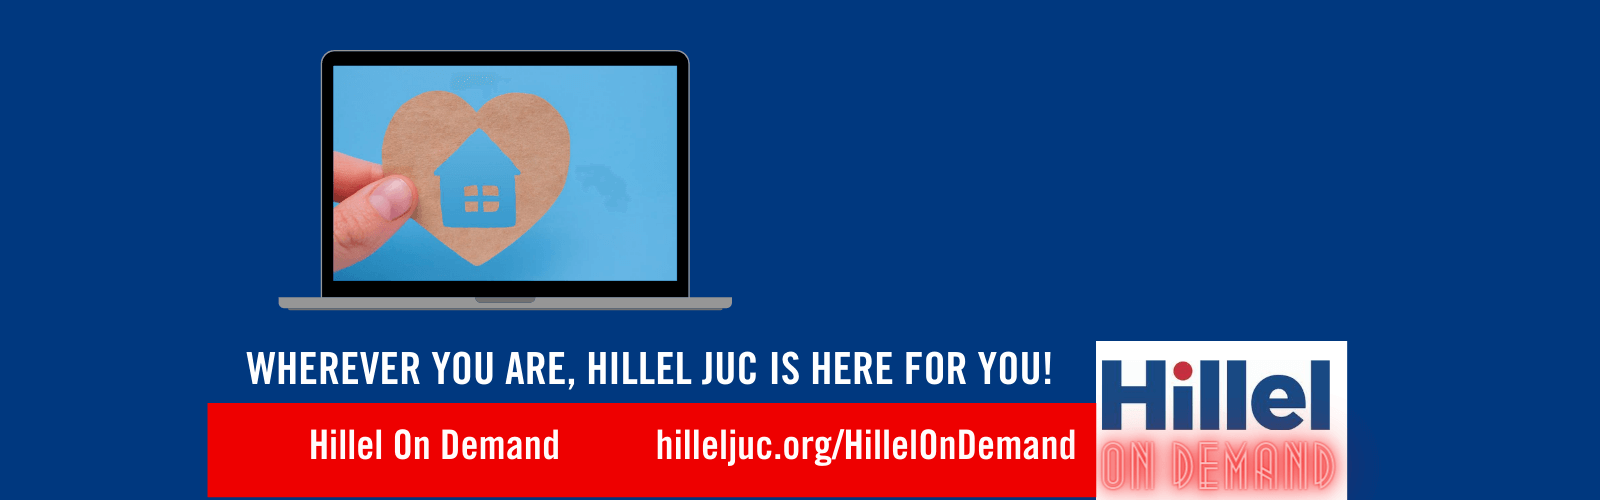 Welcome to Hillel JUC's HillelOnDemand Page!